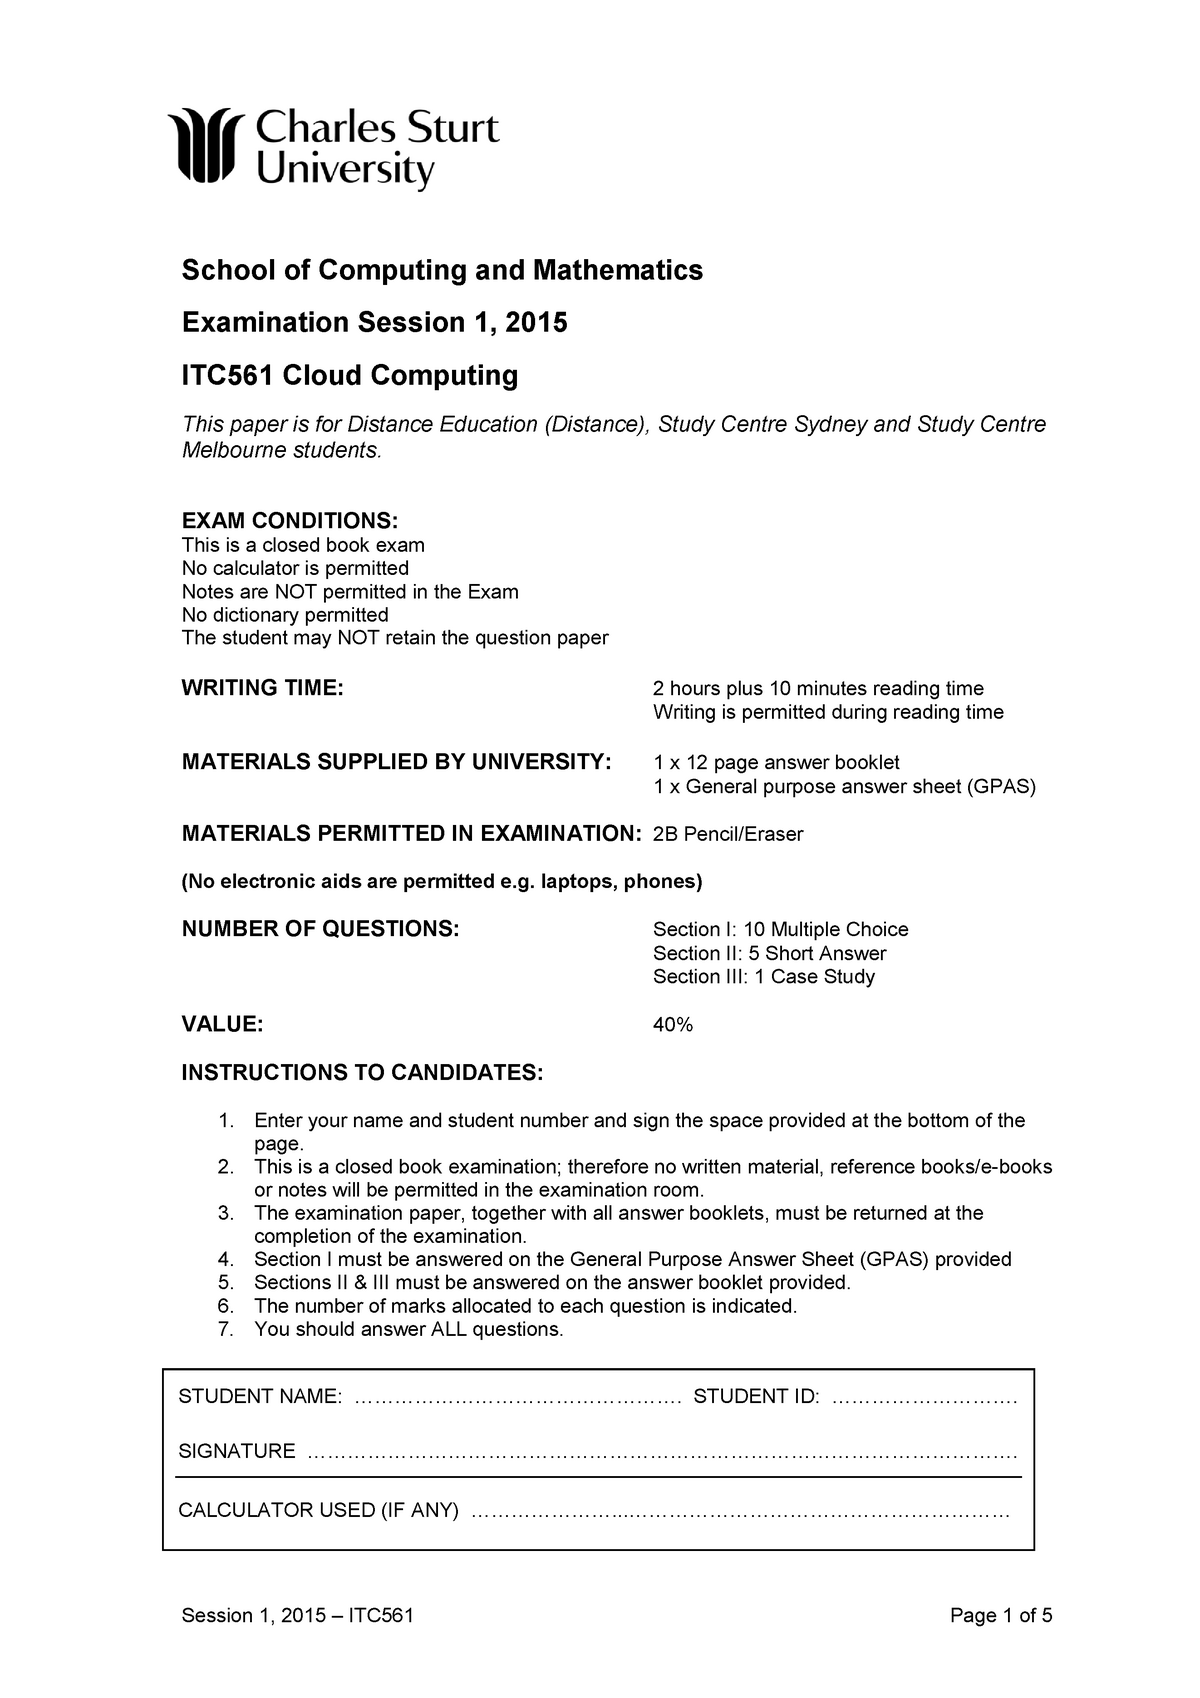 2015 30 ITC561 Exam - INF501: Readings in Information